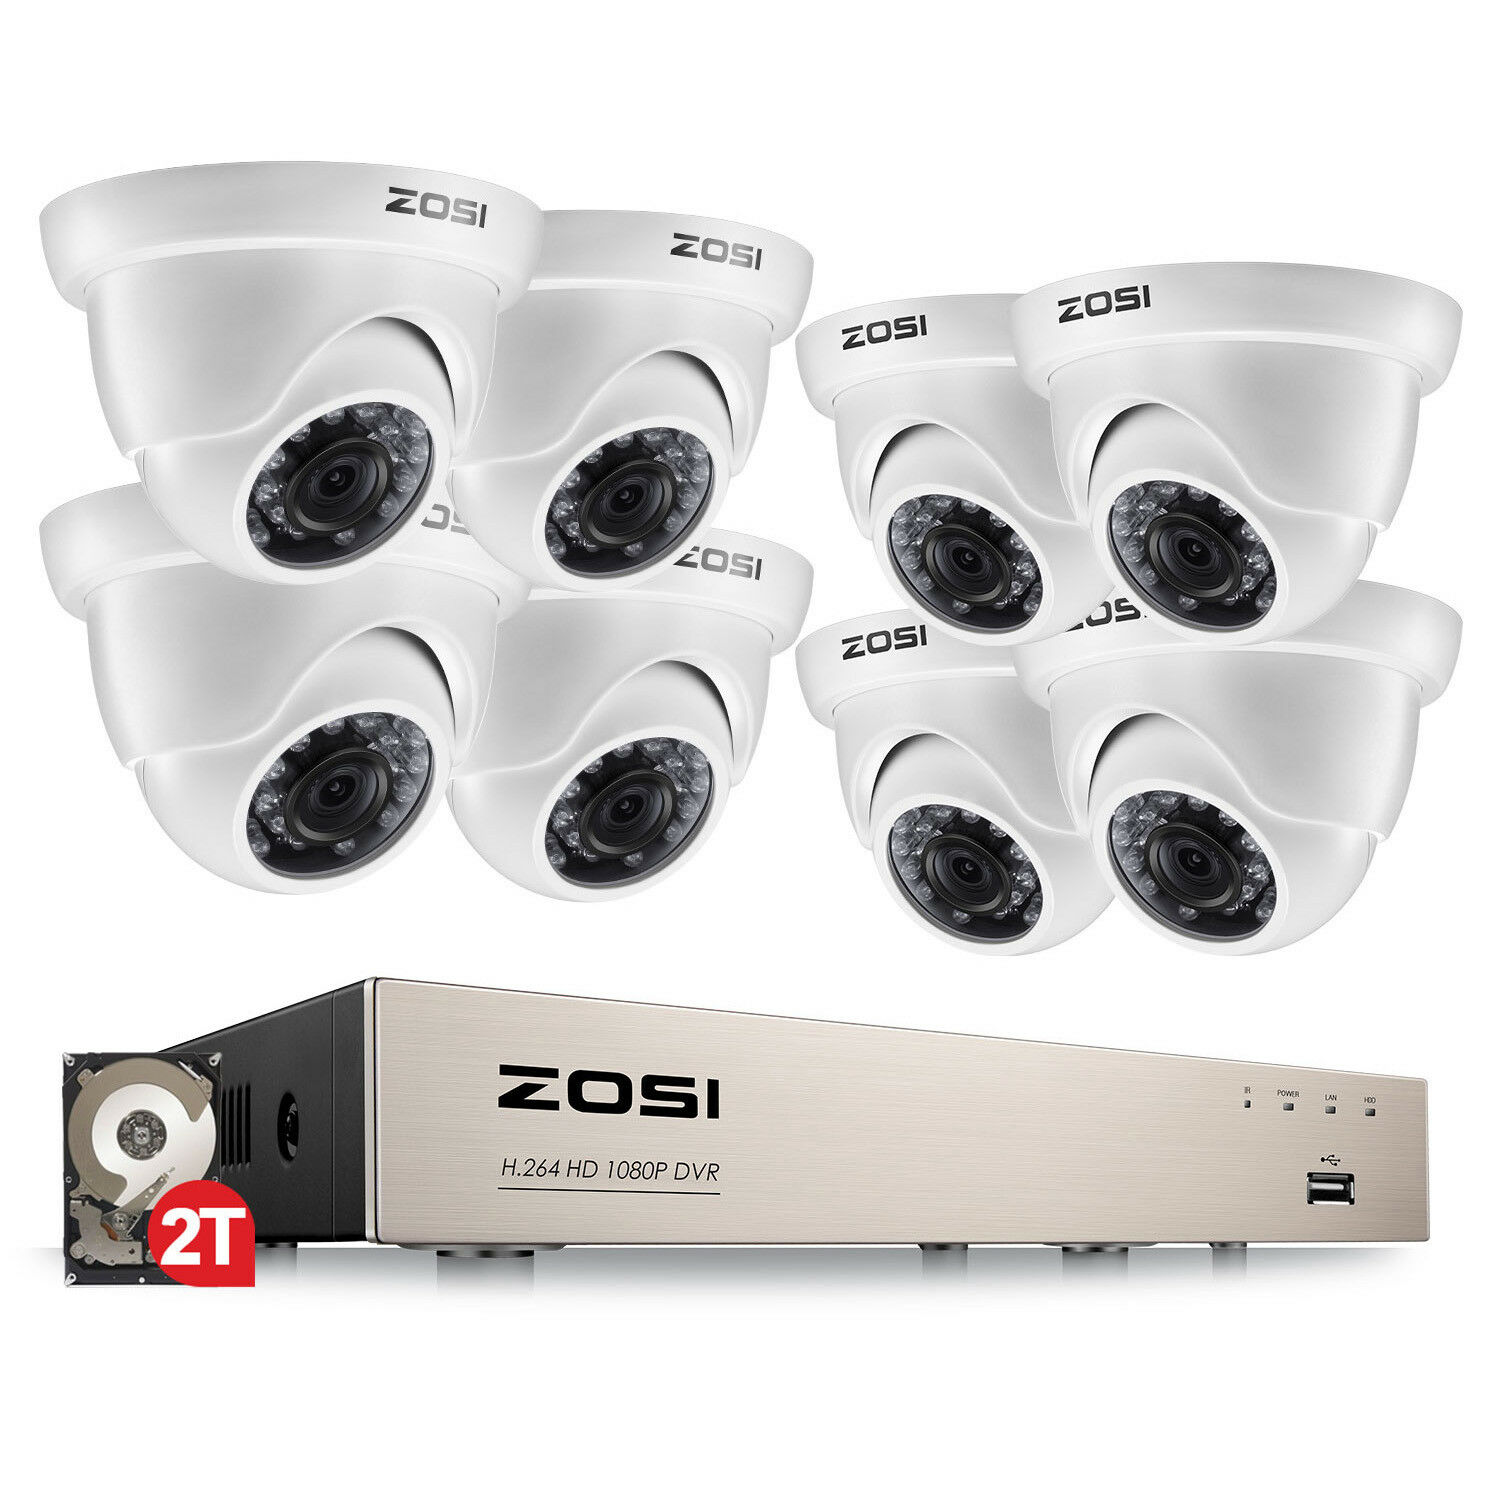 ZOSI 1080p 8CH HDMI DVR 2TB HDD 2MP IR Outdoor CCTV Home Security Camera System